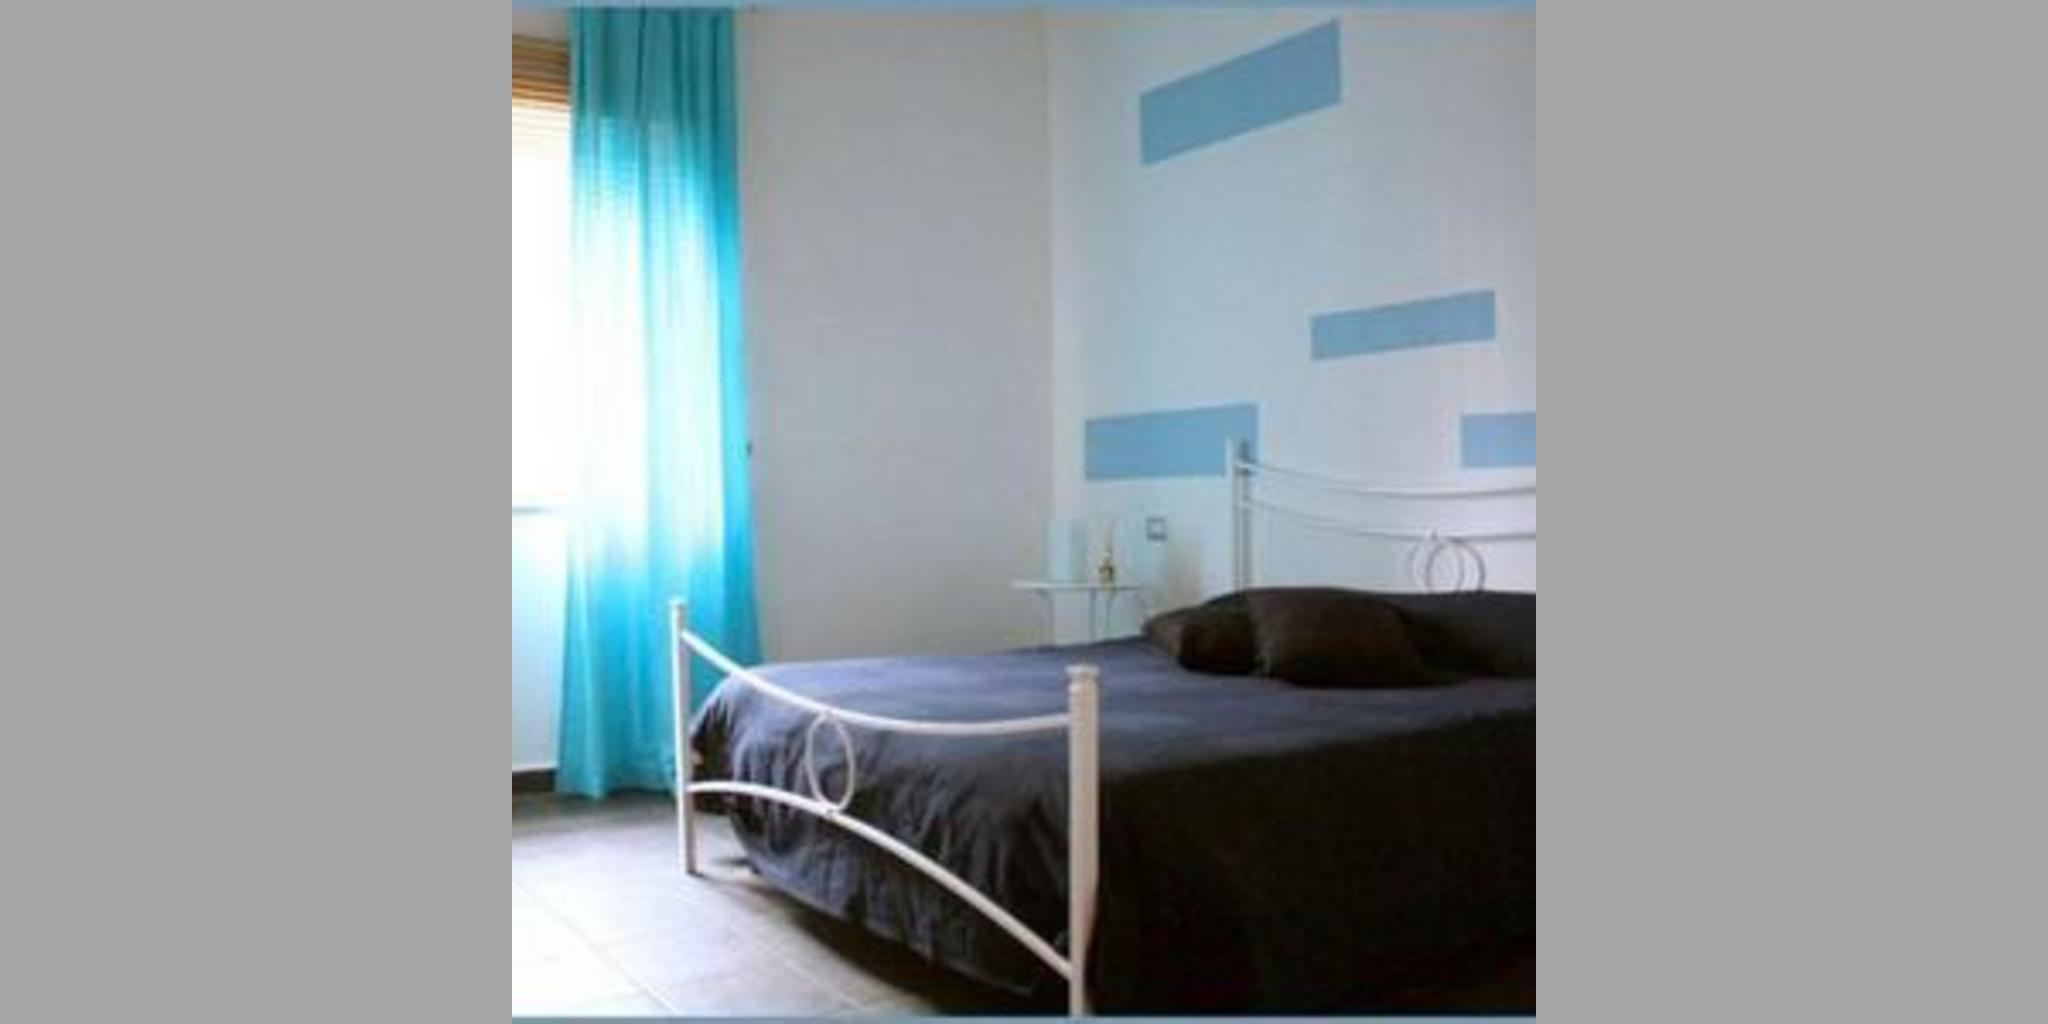 Bed & Breakfast Ercolano - Ercolano